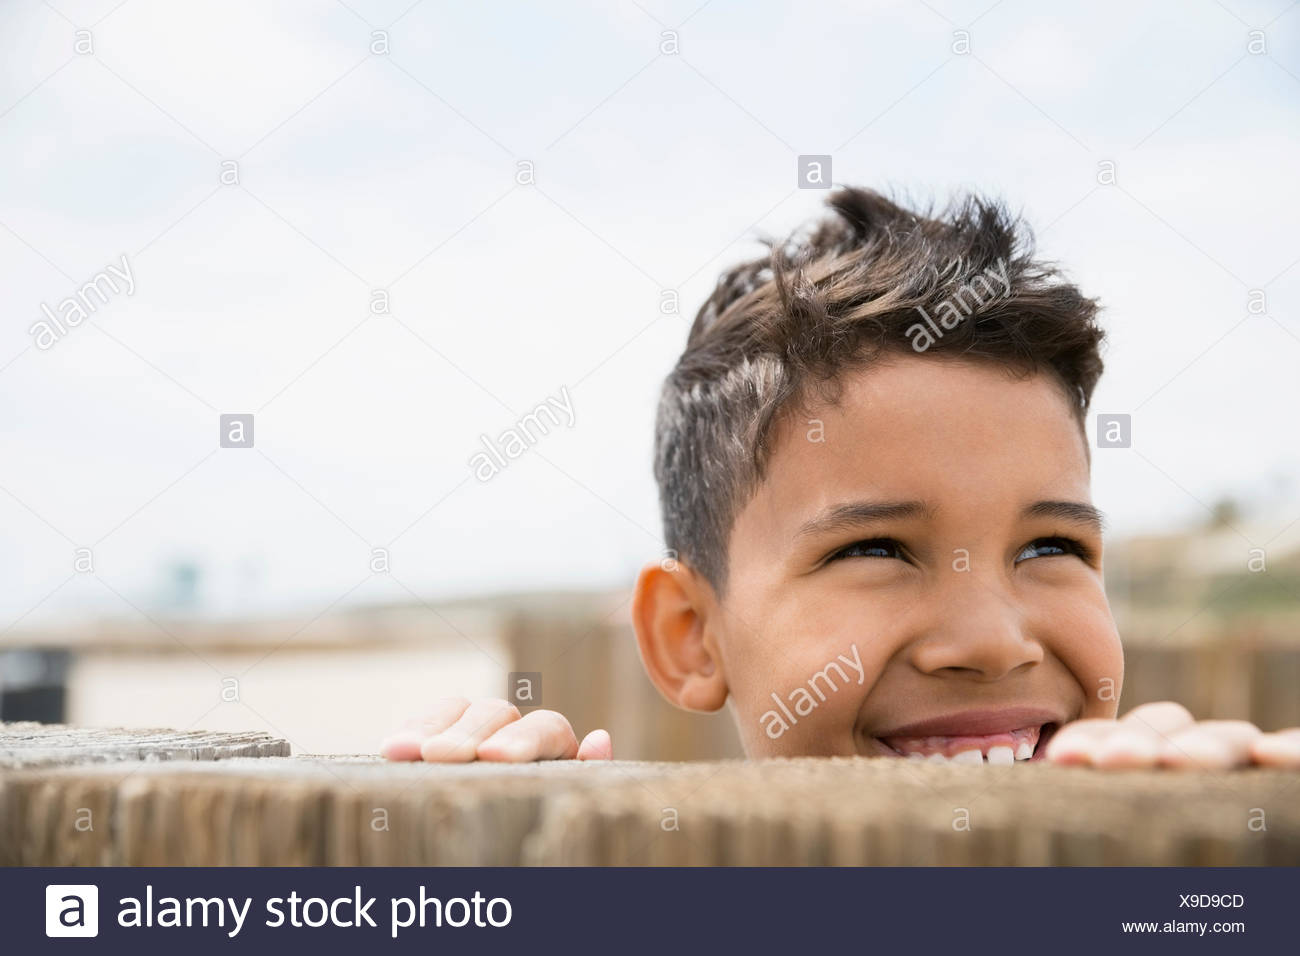 Smiling boy looking up from behind wall - Stock Image